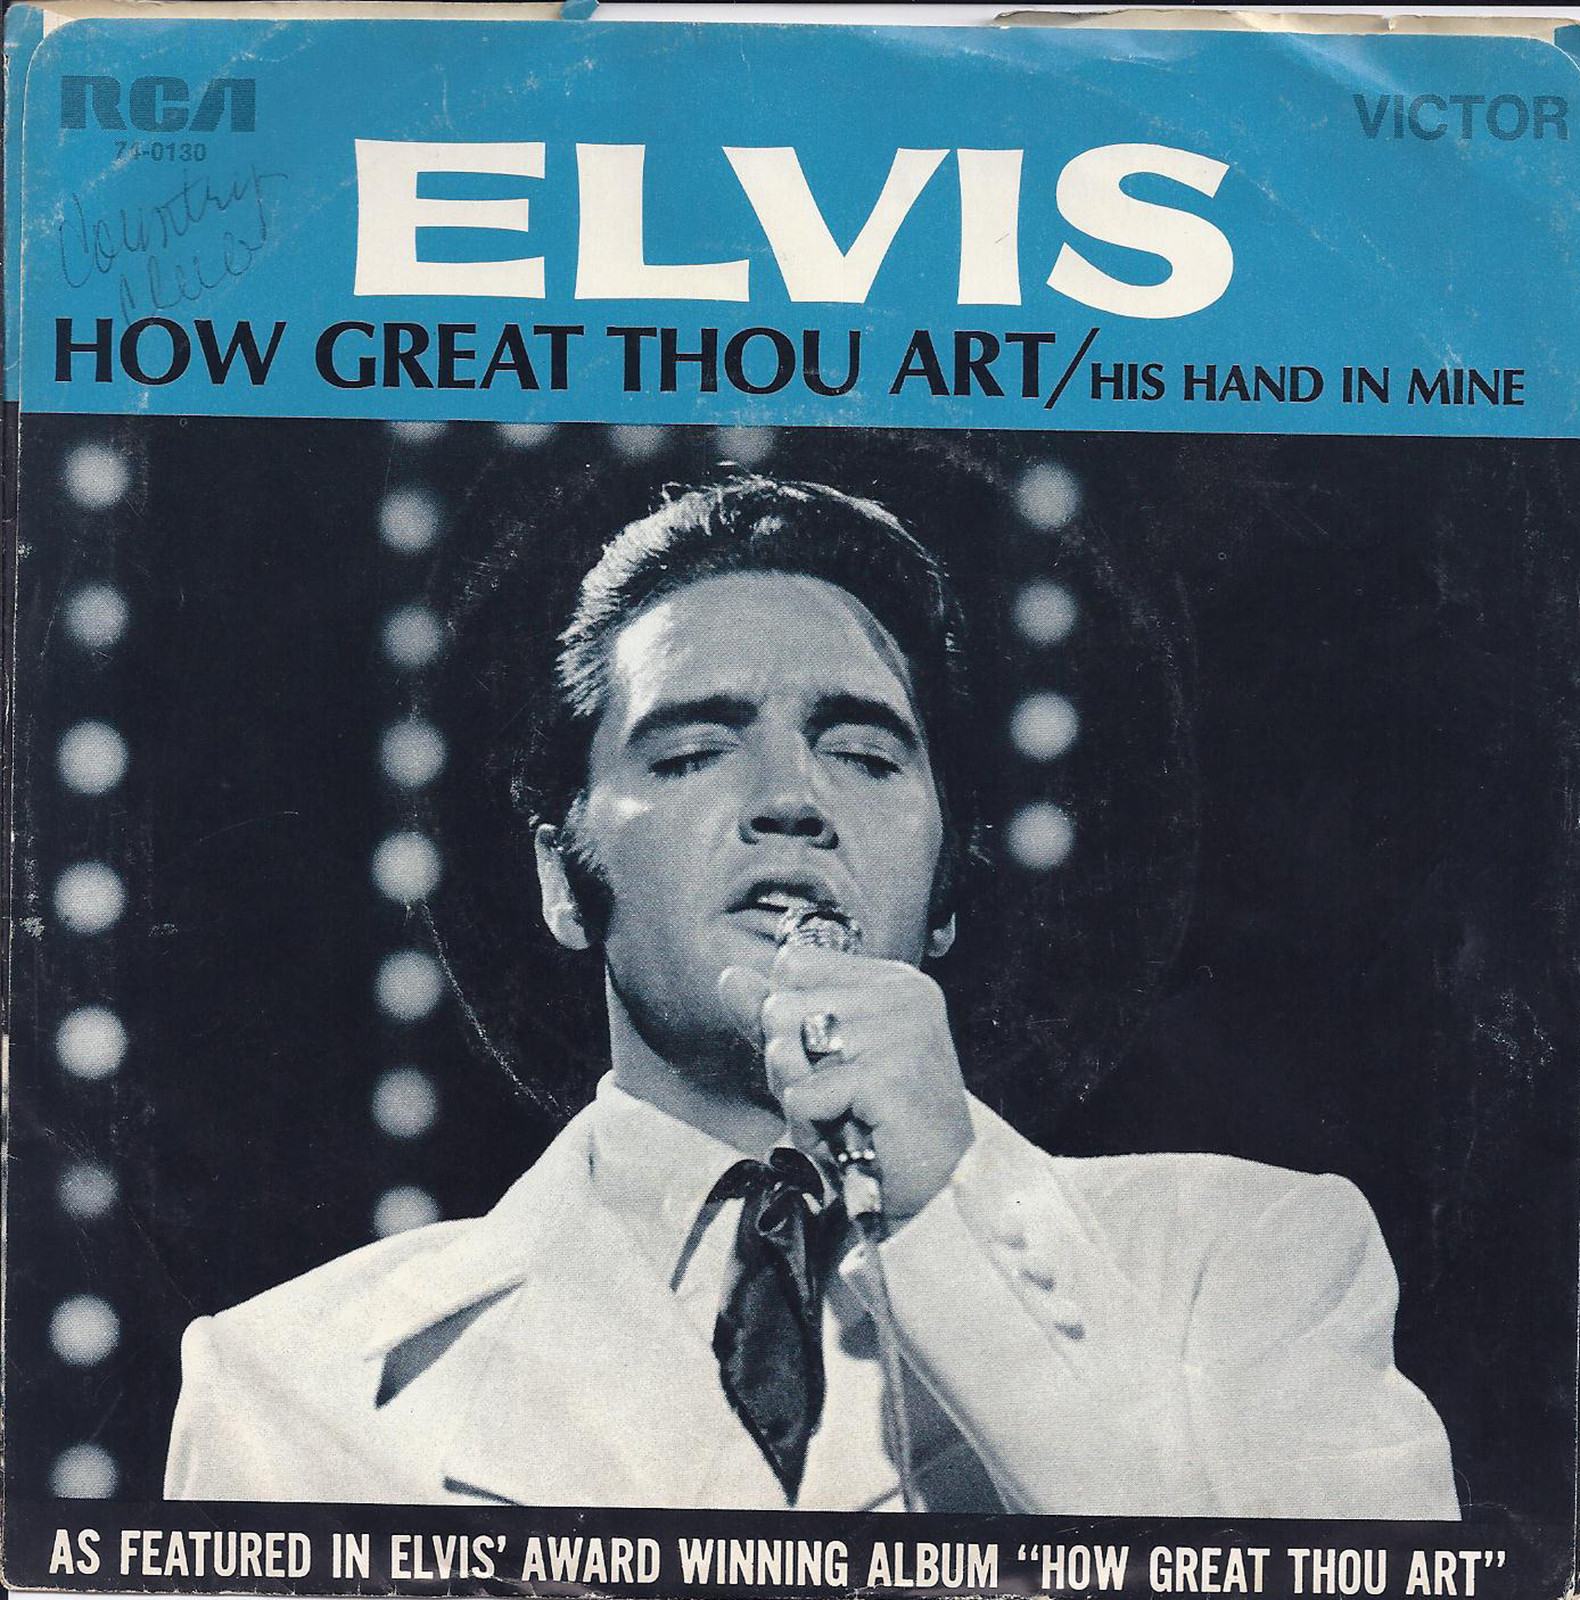 His Hand In Mine / How Great Thou Art 74-0130aexjow